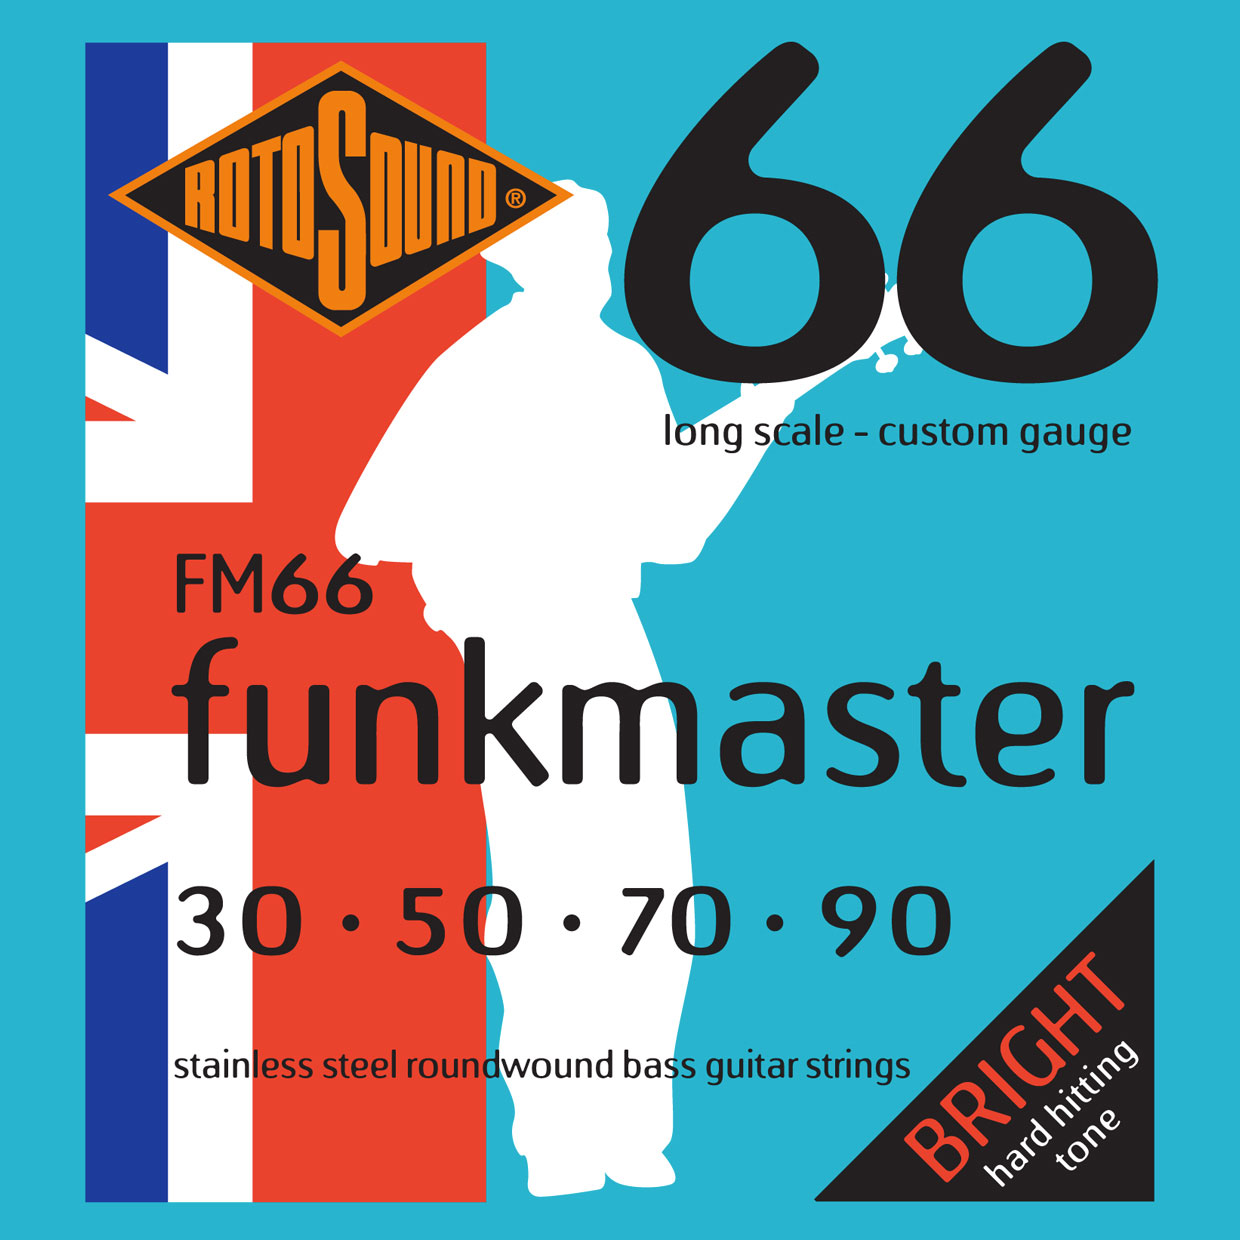 SWING BASS 66 FM66 STAINLESS STEEL FUNKMASTER 3090